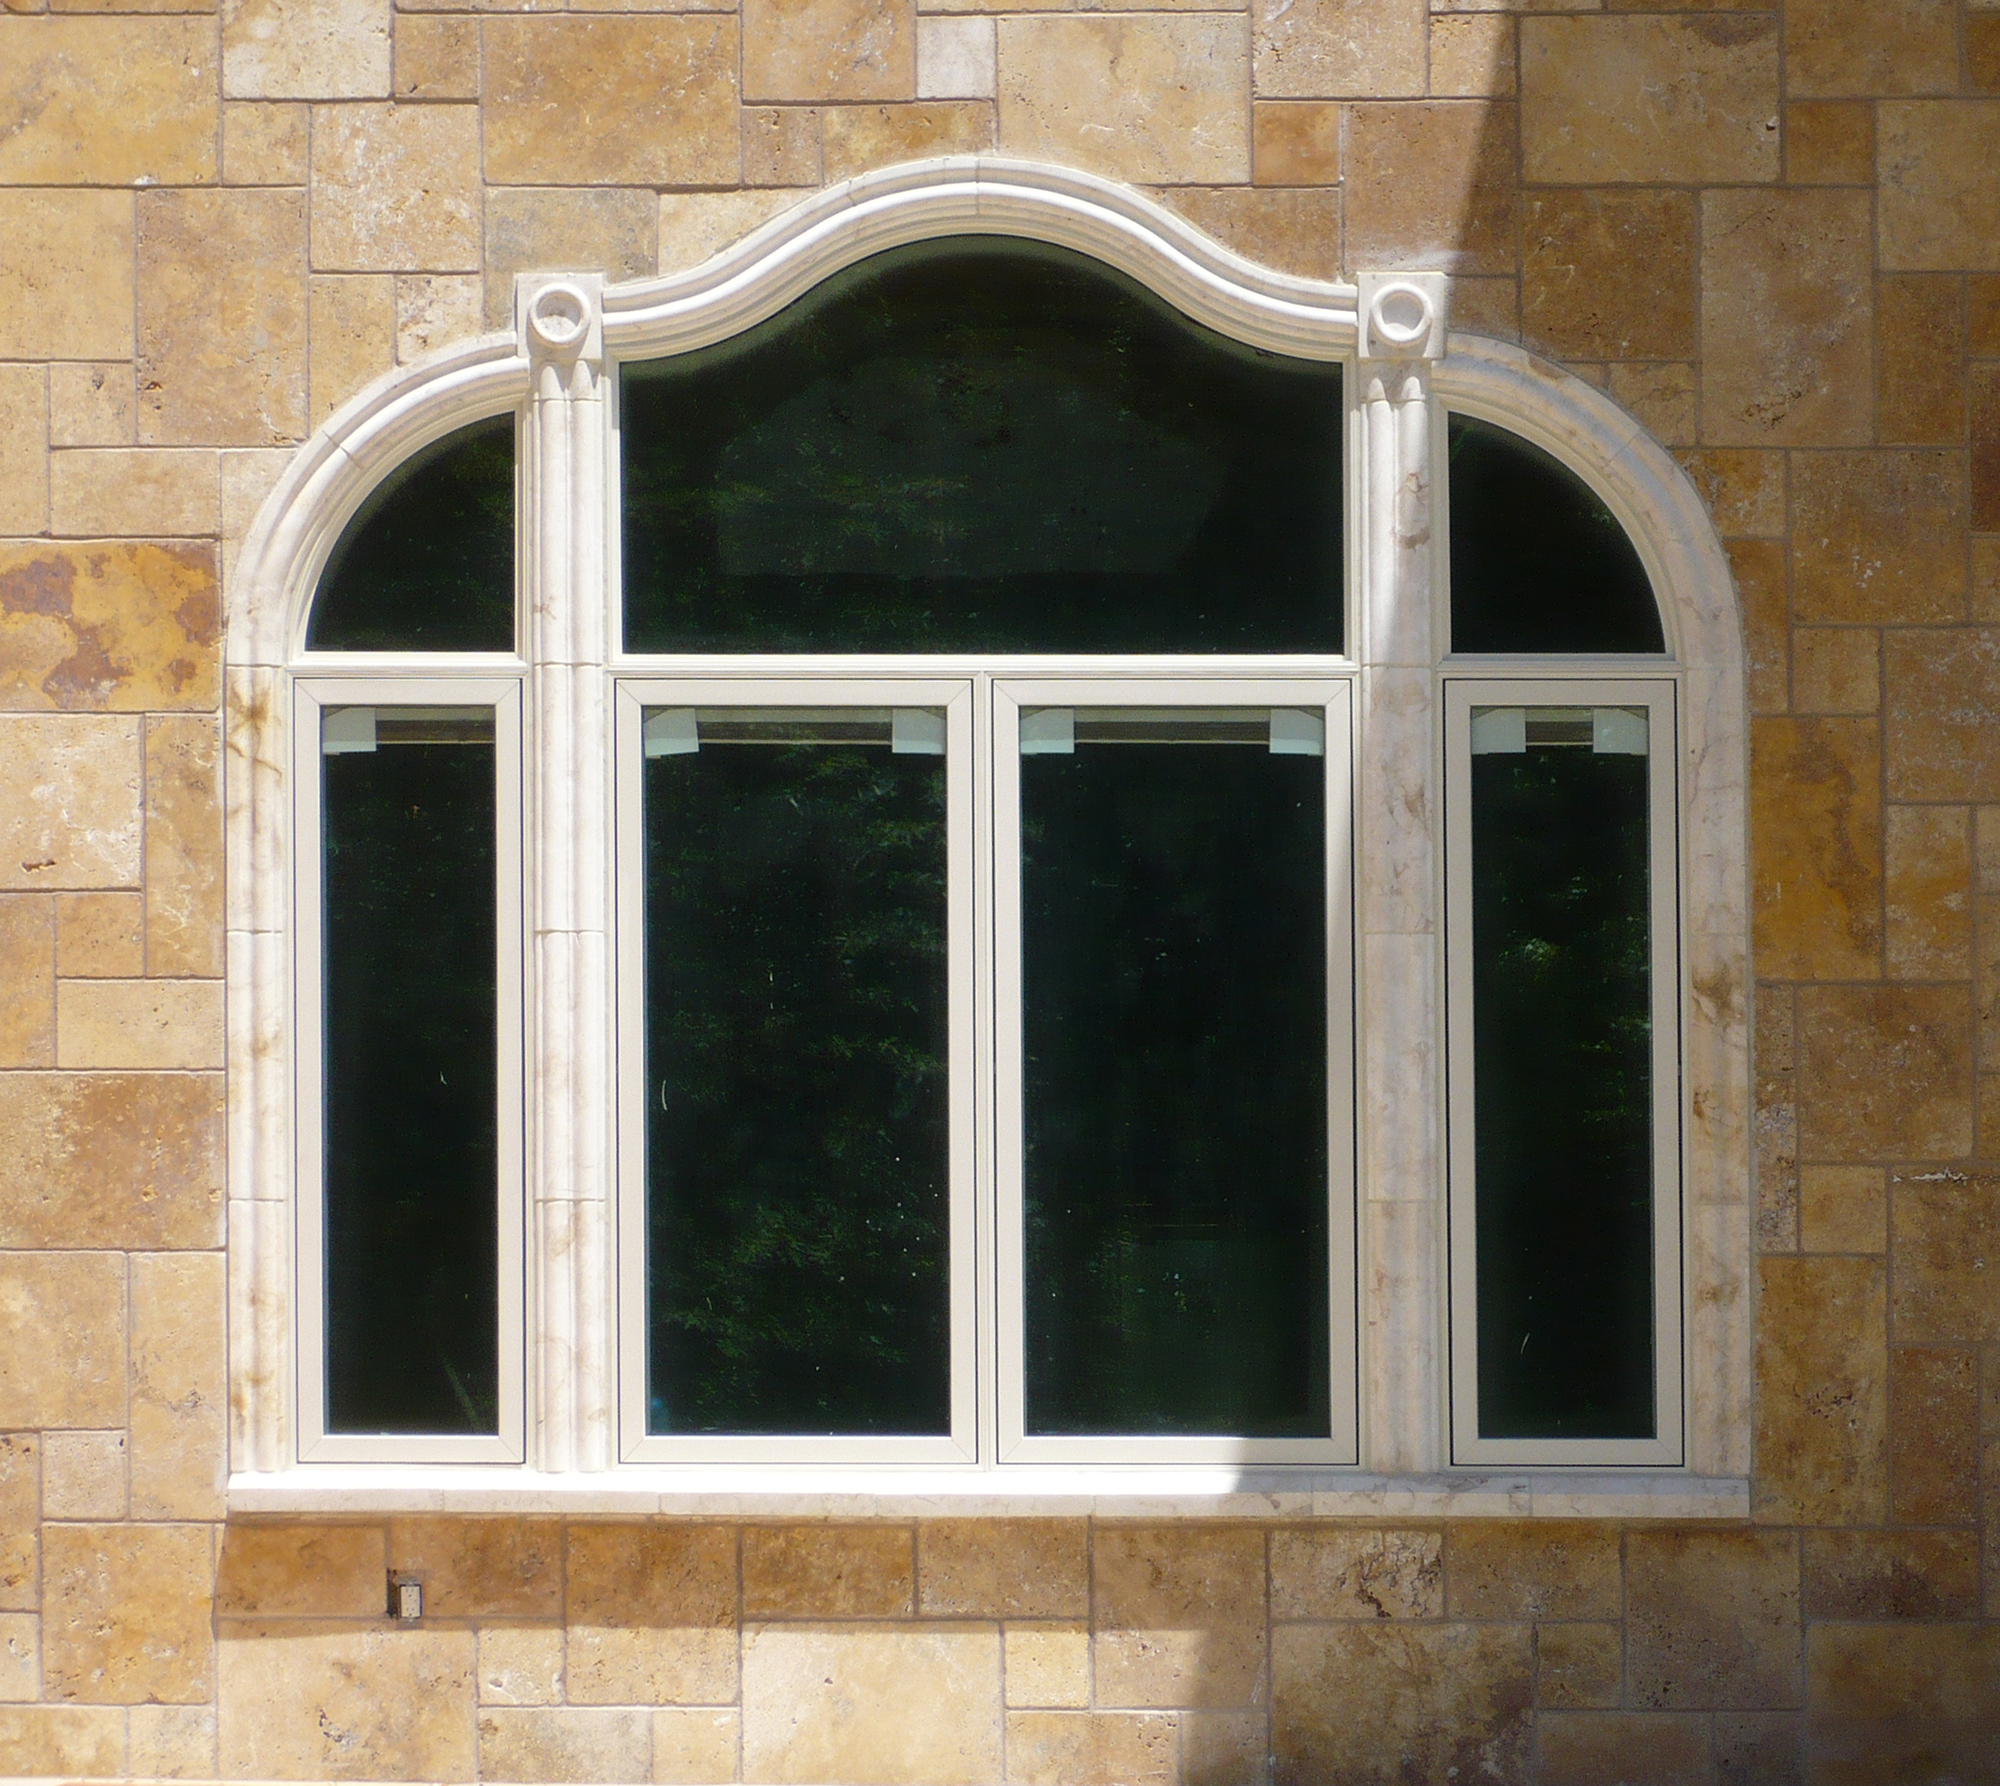 11_Dalloul_fenestration curve window with dot detail 2000x1376_P1070499.jpg